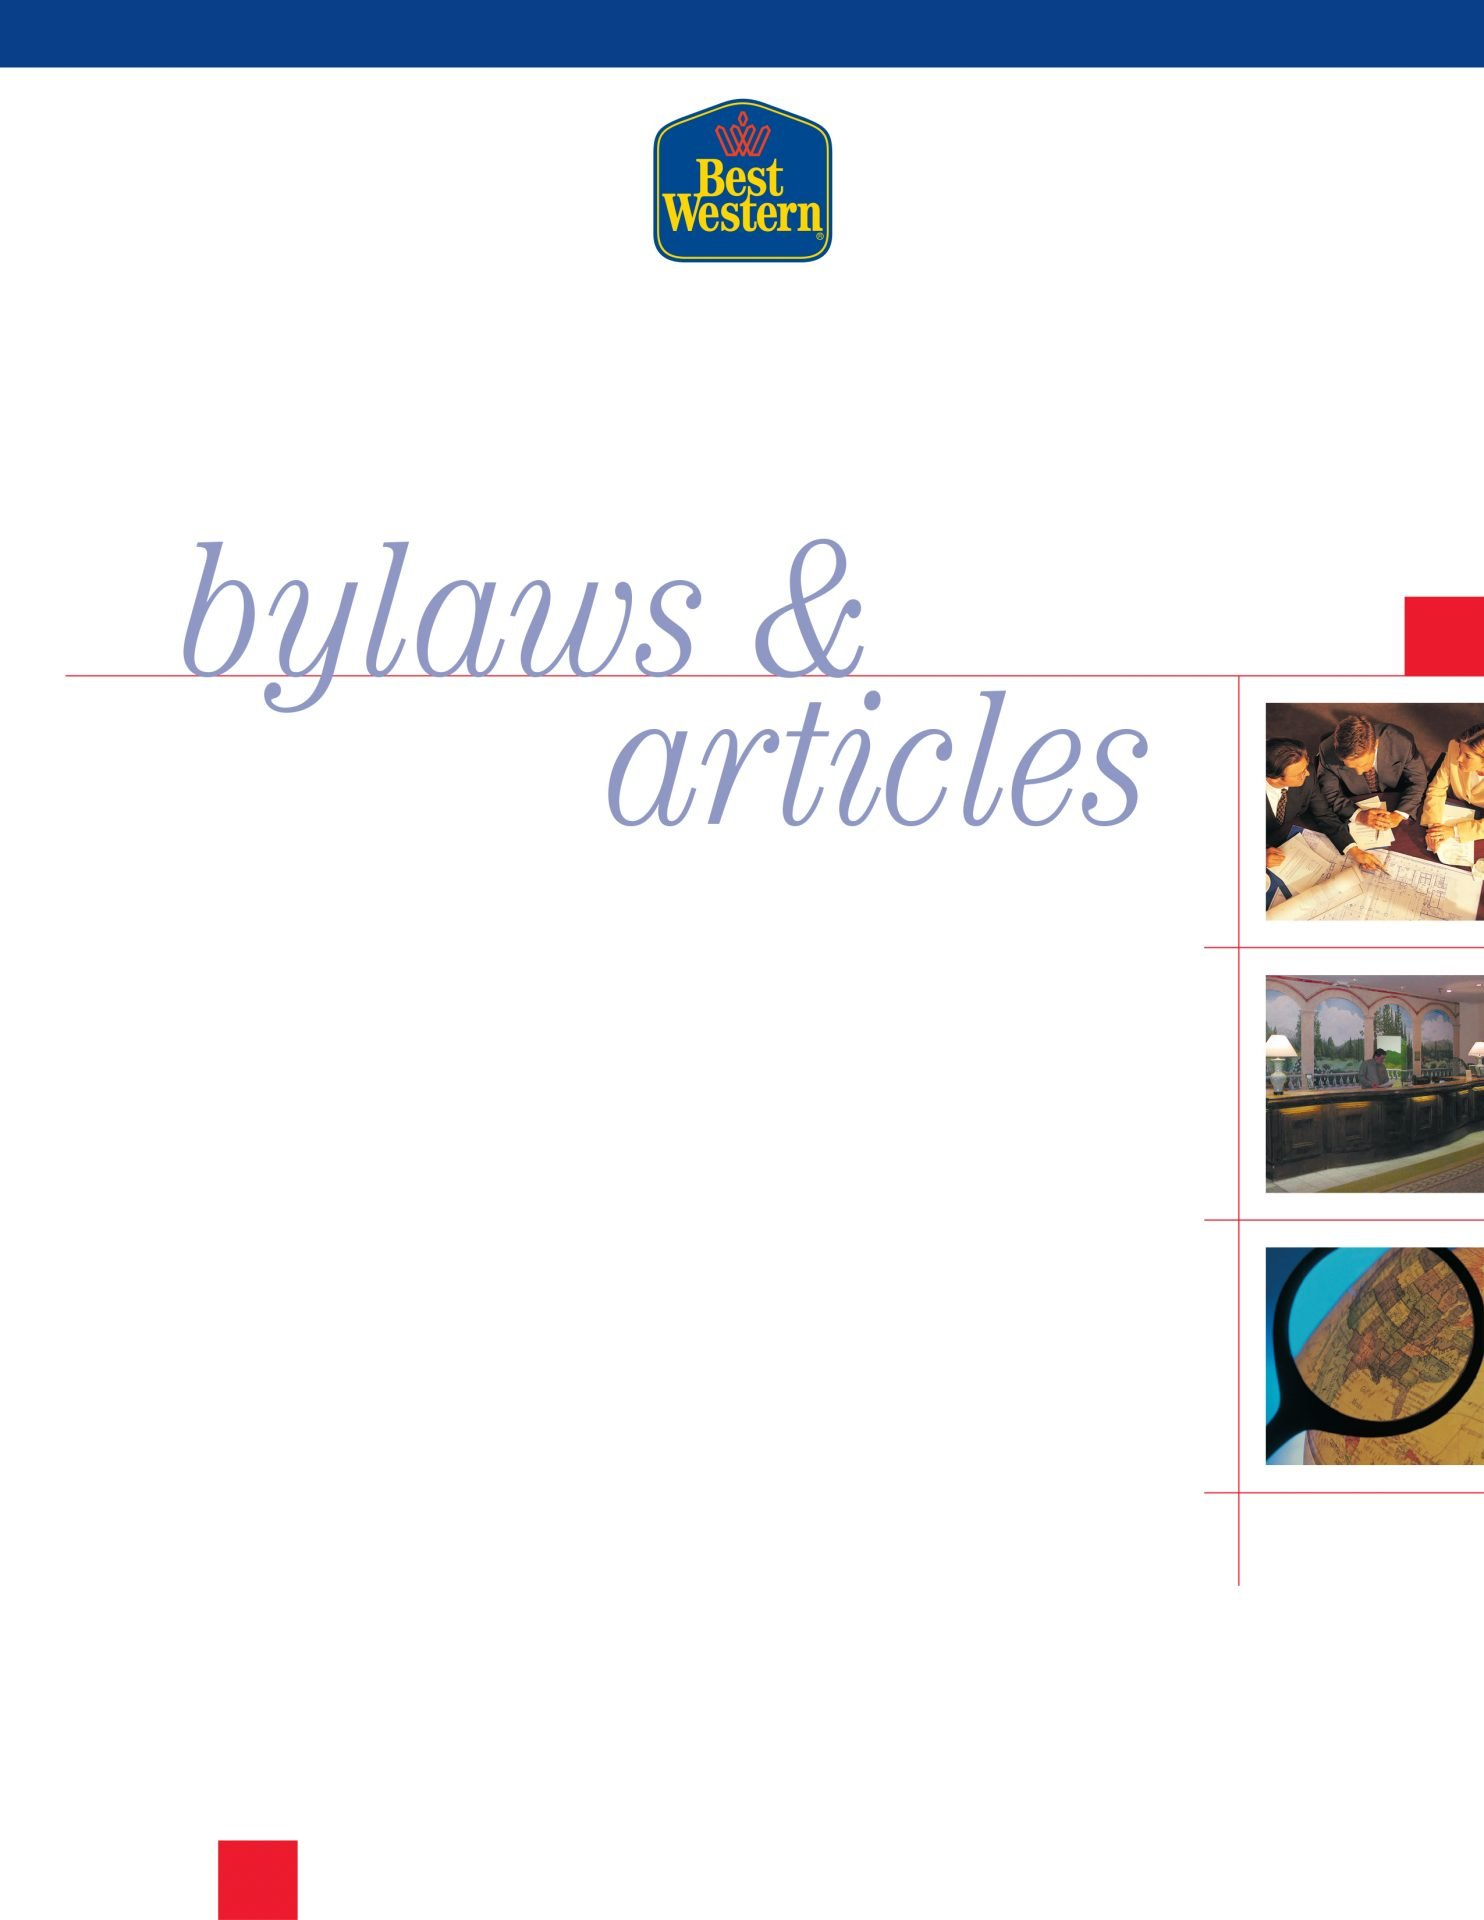 BestWestern-Bylaws-booklet-cover